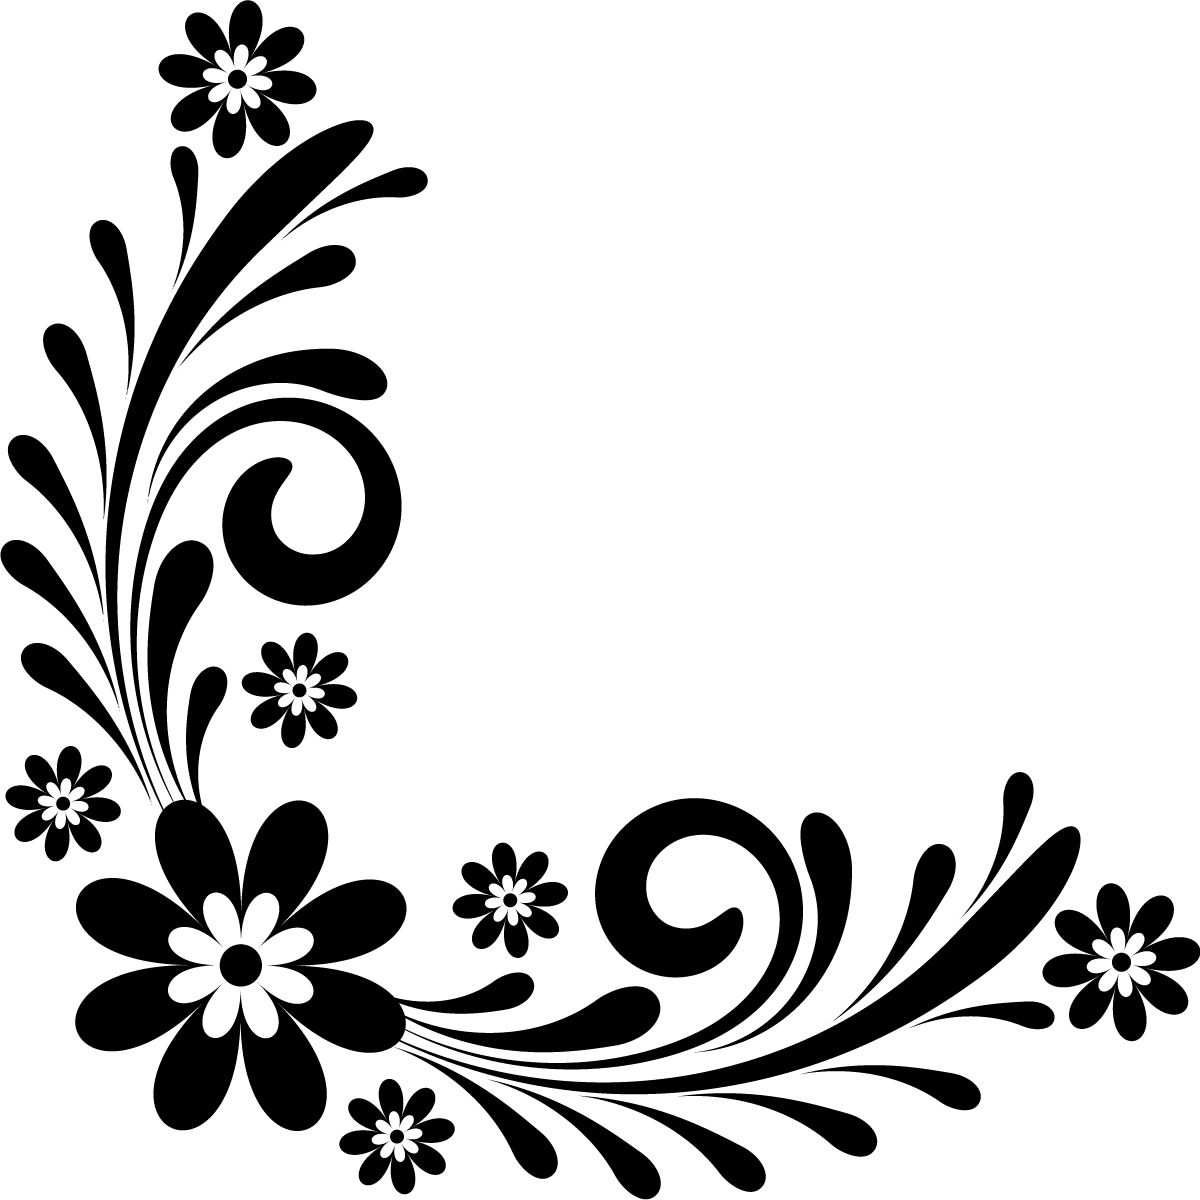 1200x1200 Photos Flowers Border Design In Drawing,